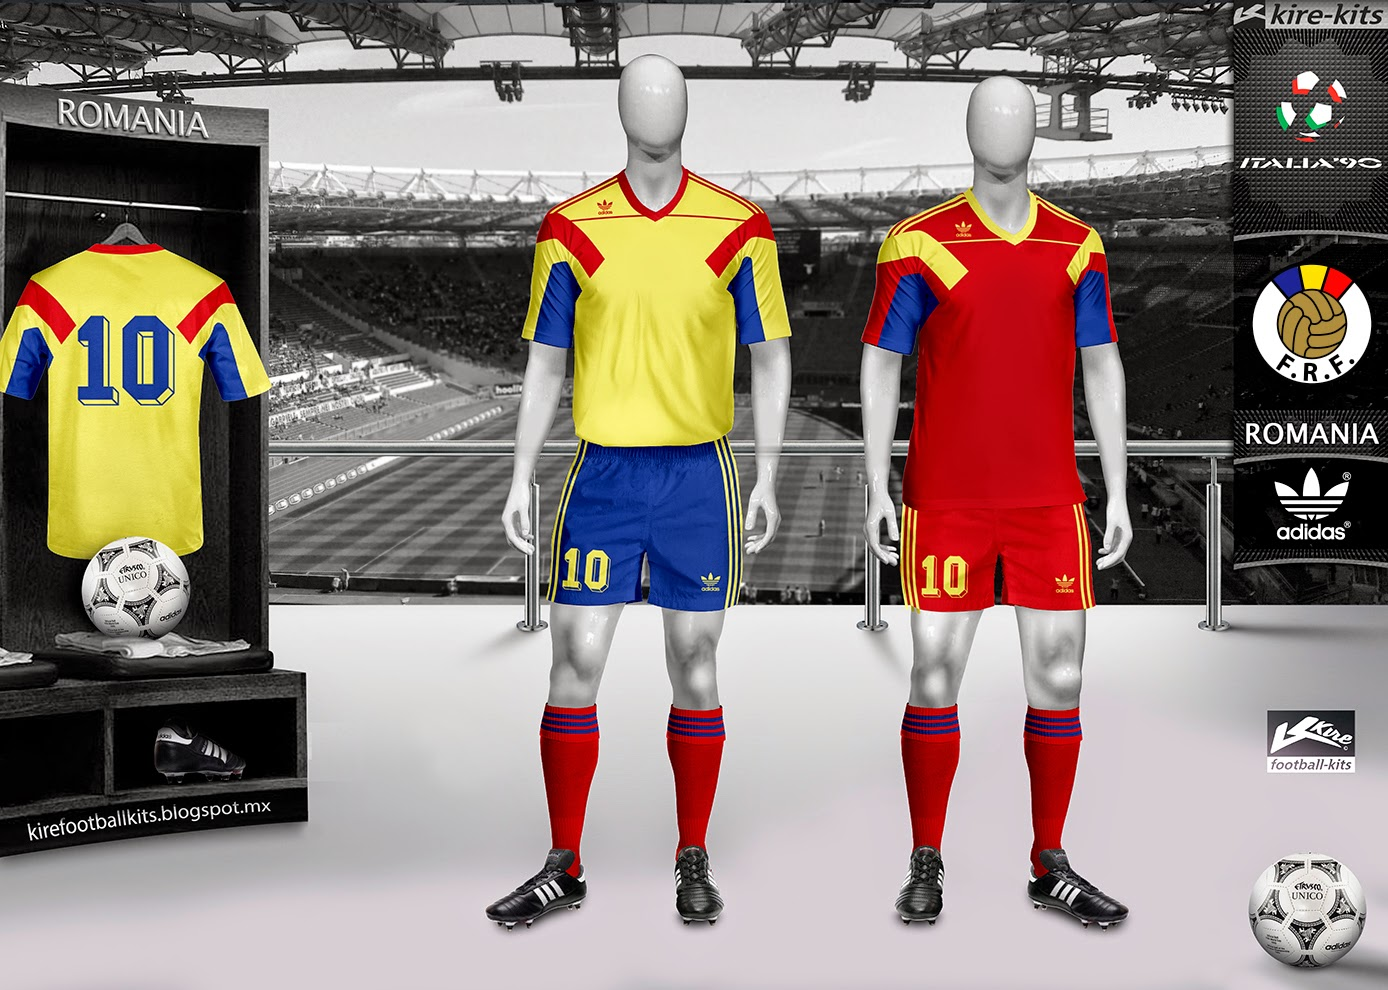 Romania Home and Away Kits World Cup Italy 1990